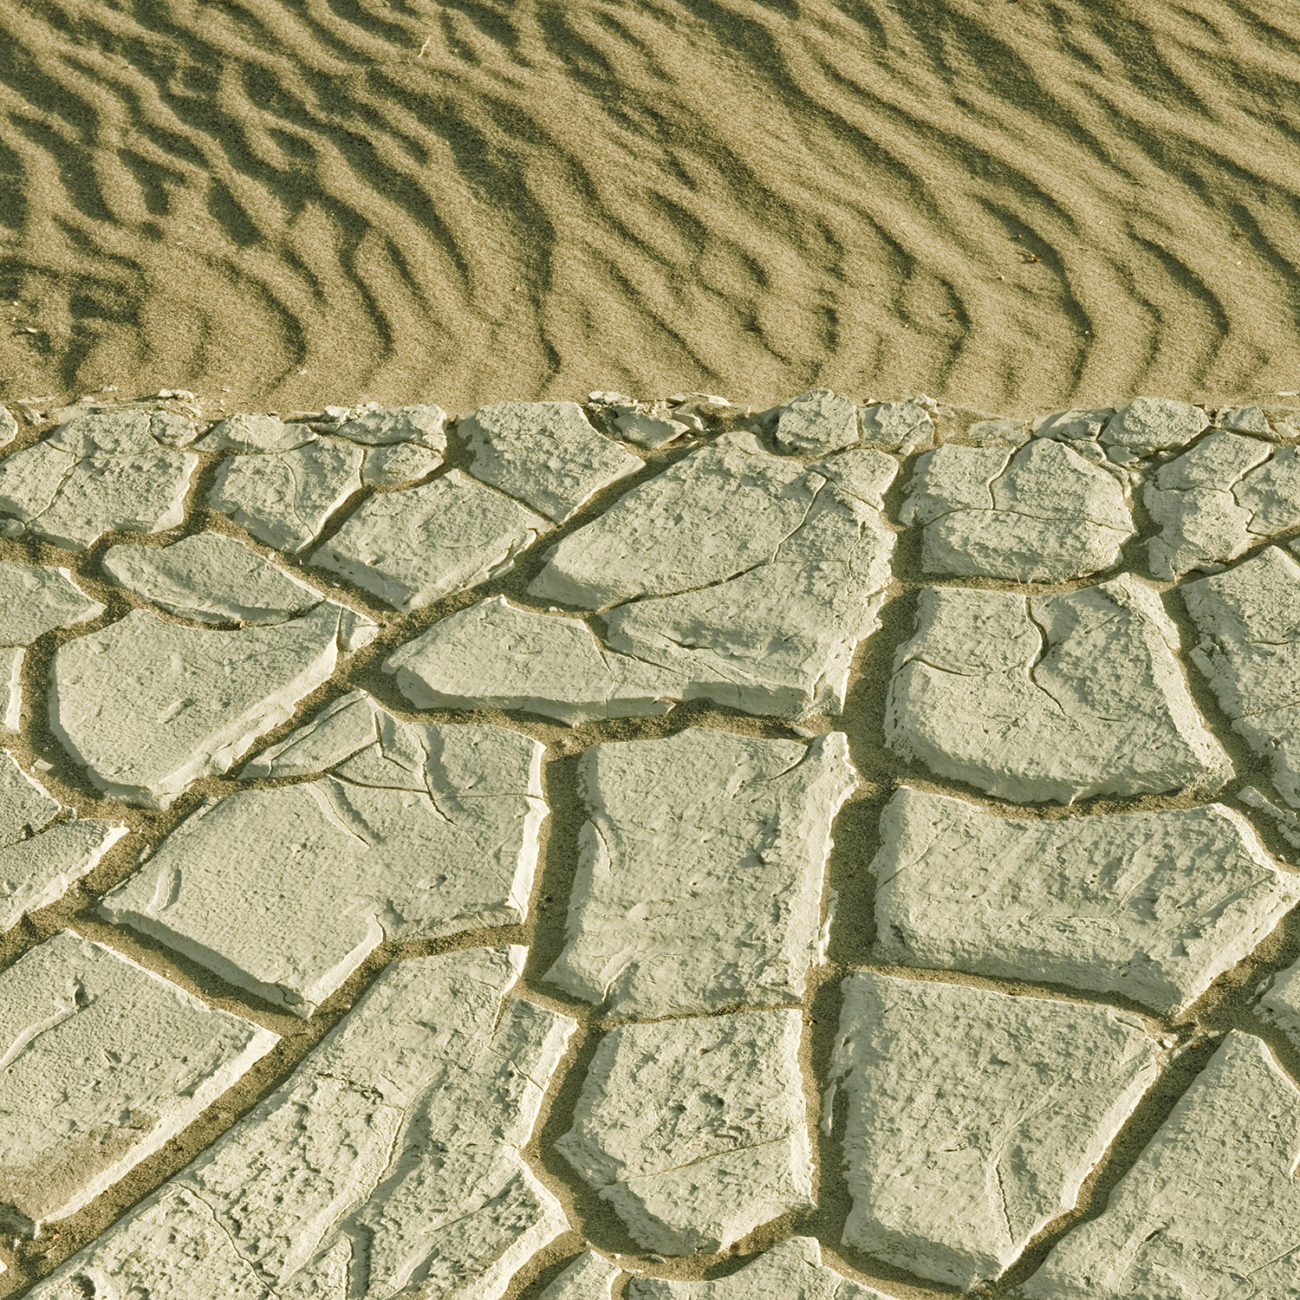 Cracked earth, Death Valley, 2009